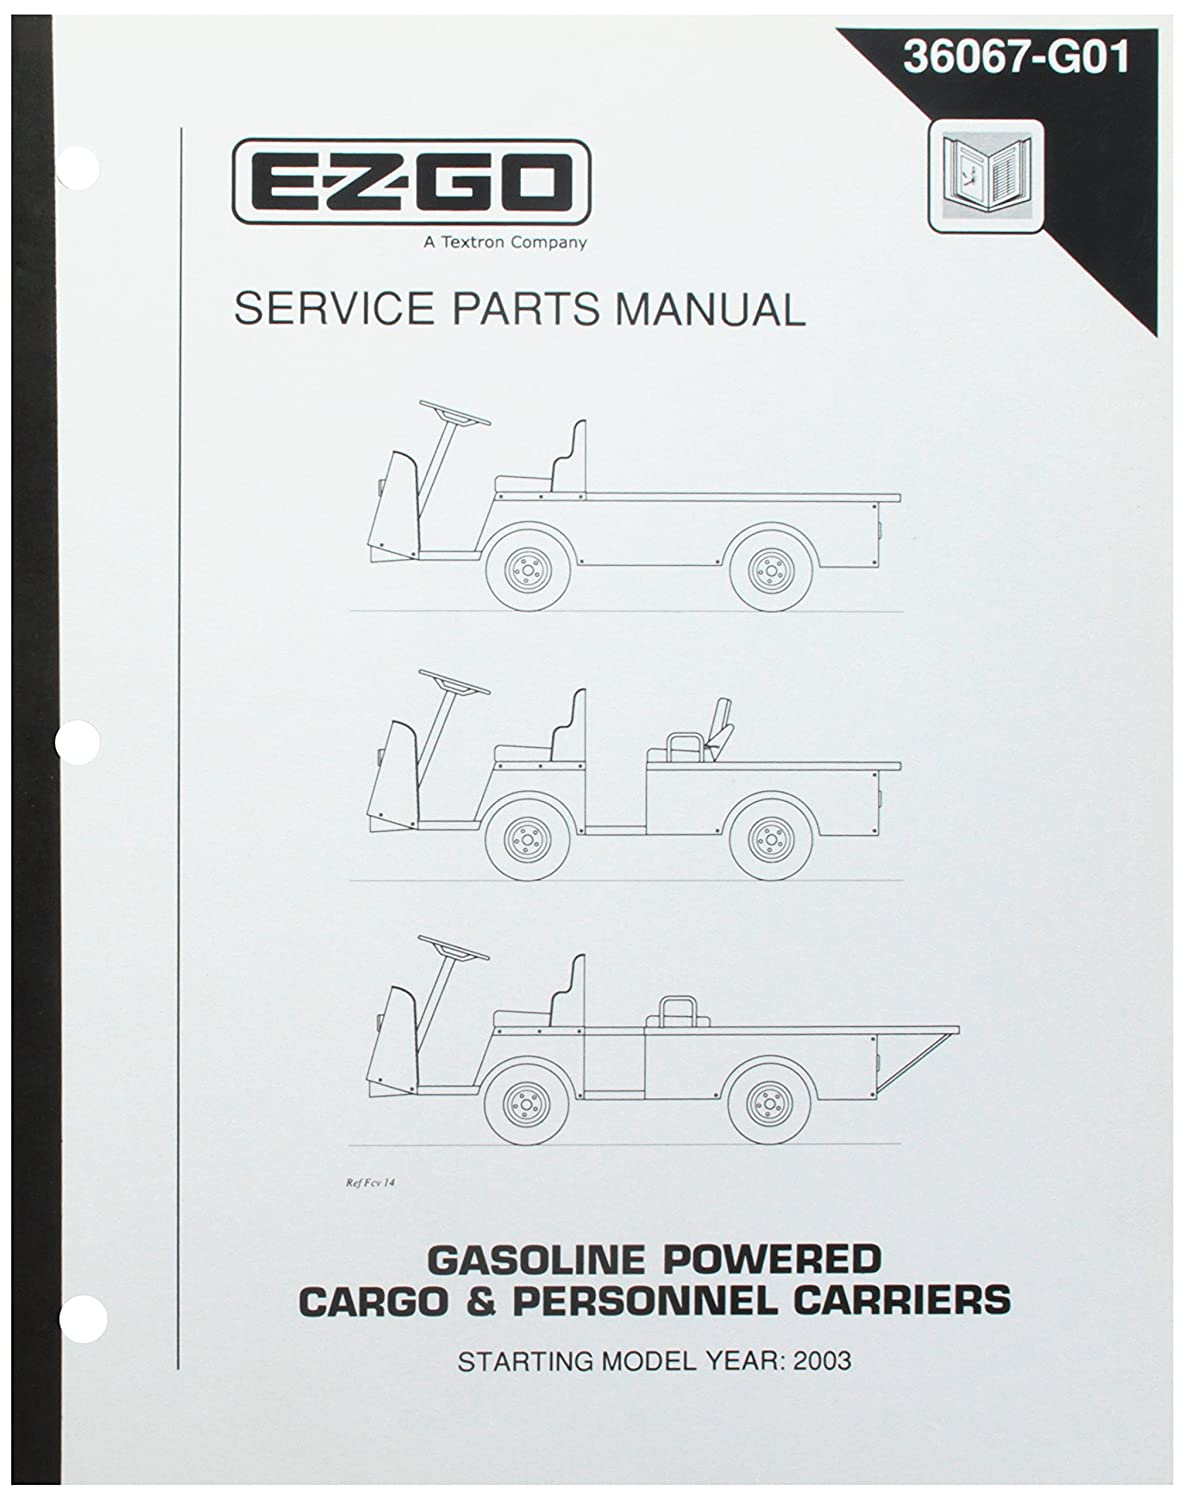 Amazon.com : EZGO 36067G01 2003 Service Parts Manual for Gas Cargo and  Personnel Carrier Vehicles : Outdoor Decorative Fences : Garden & Outdoor